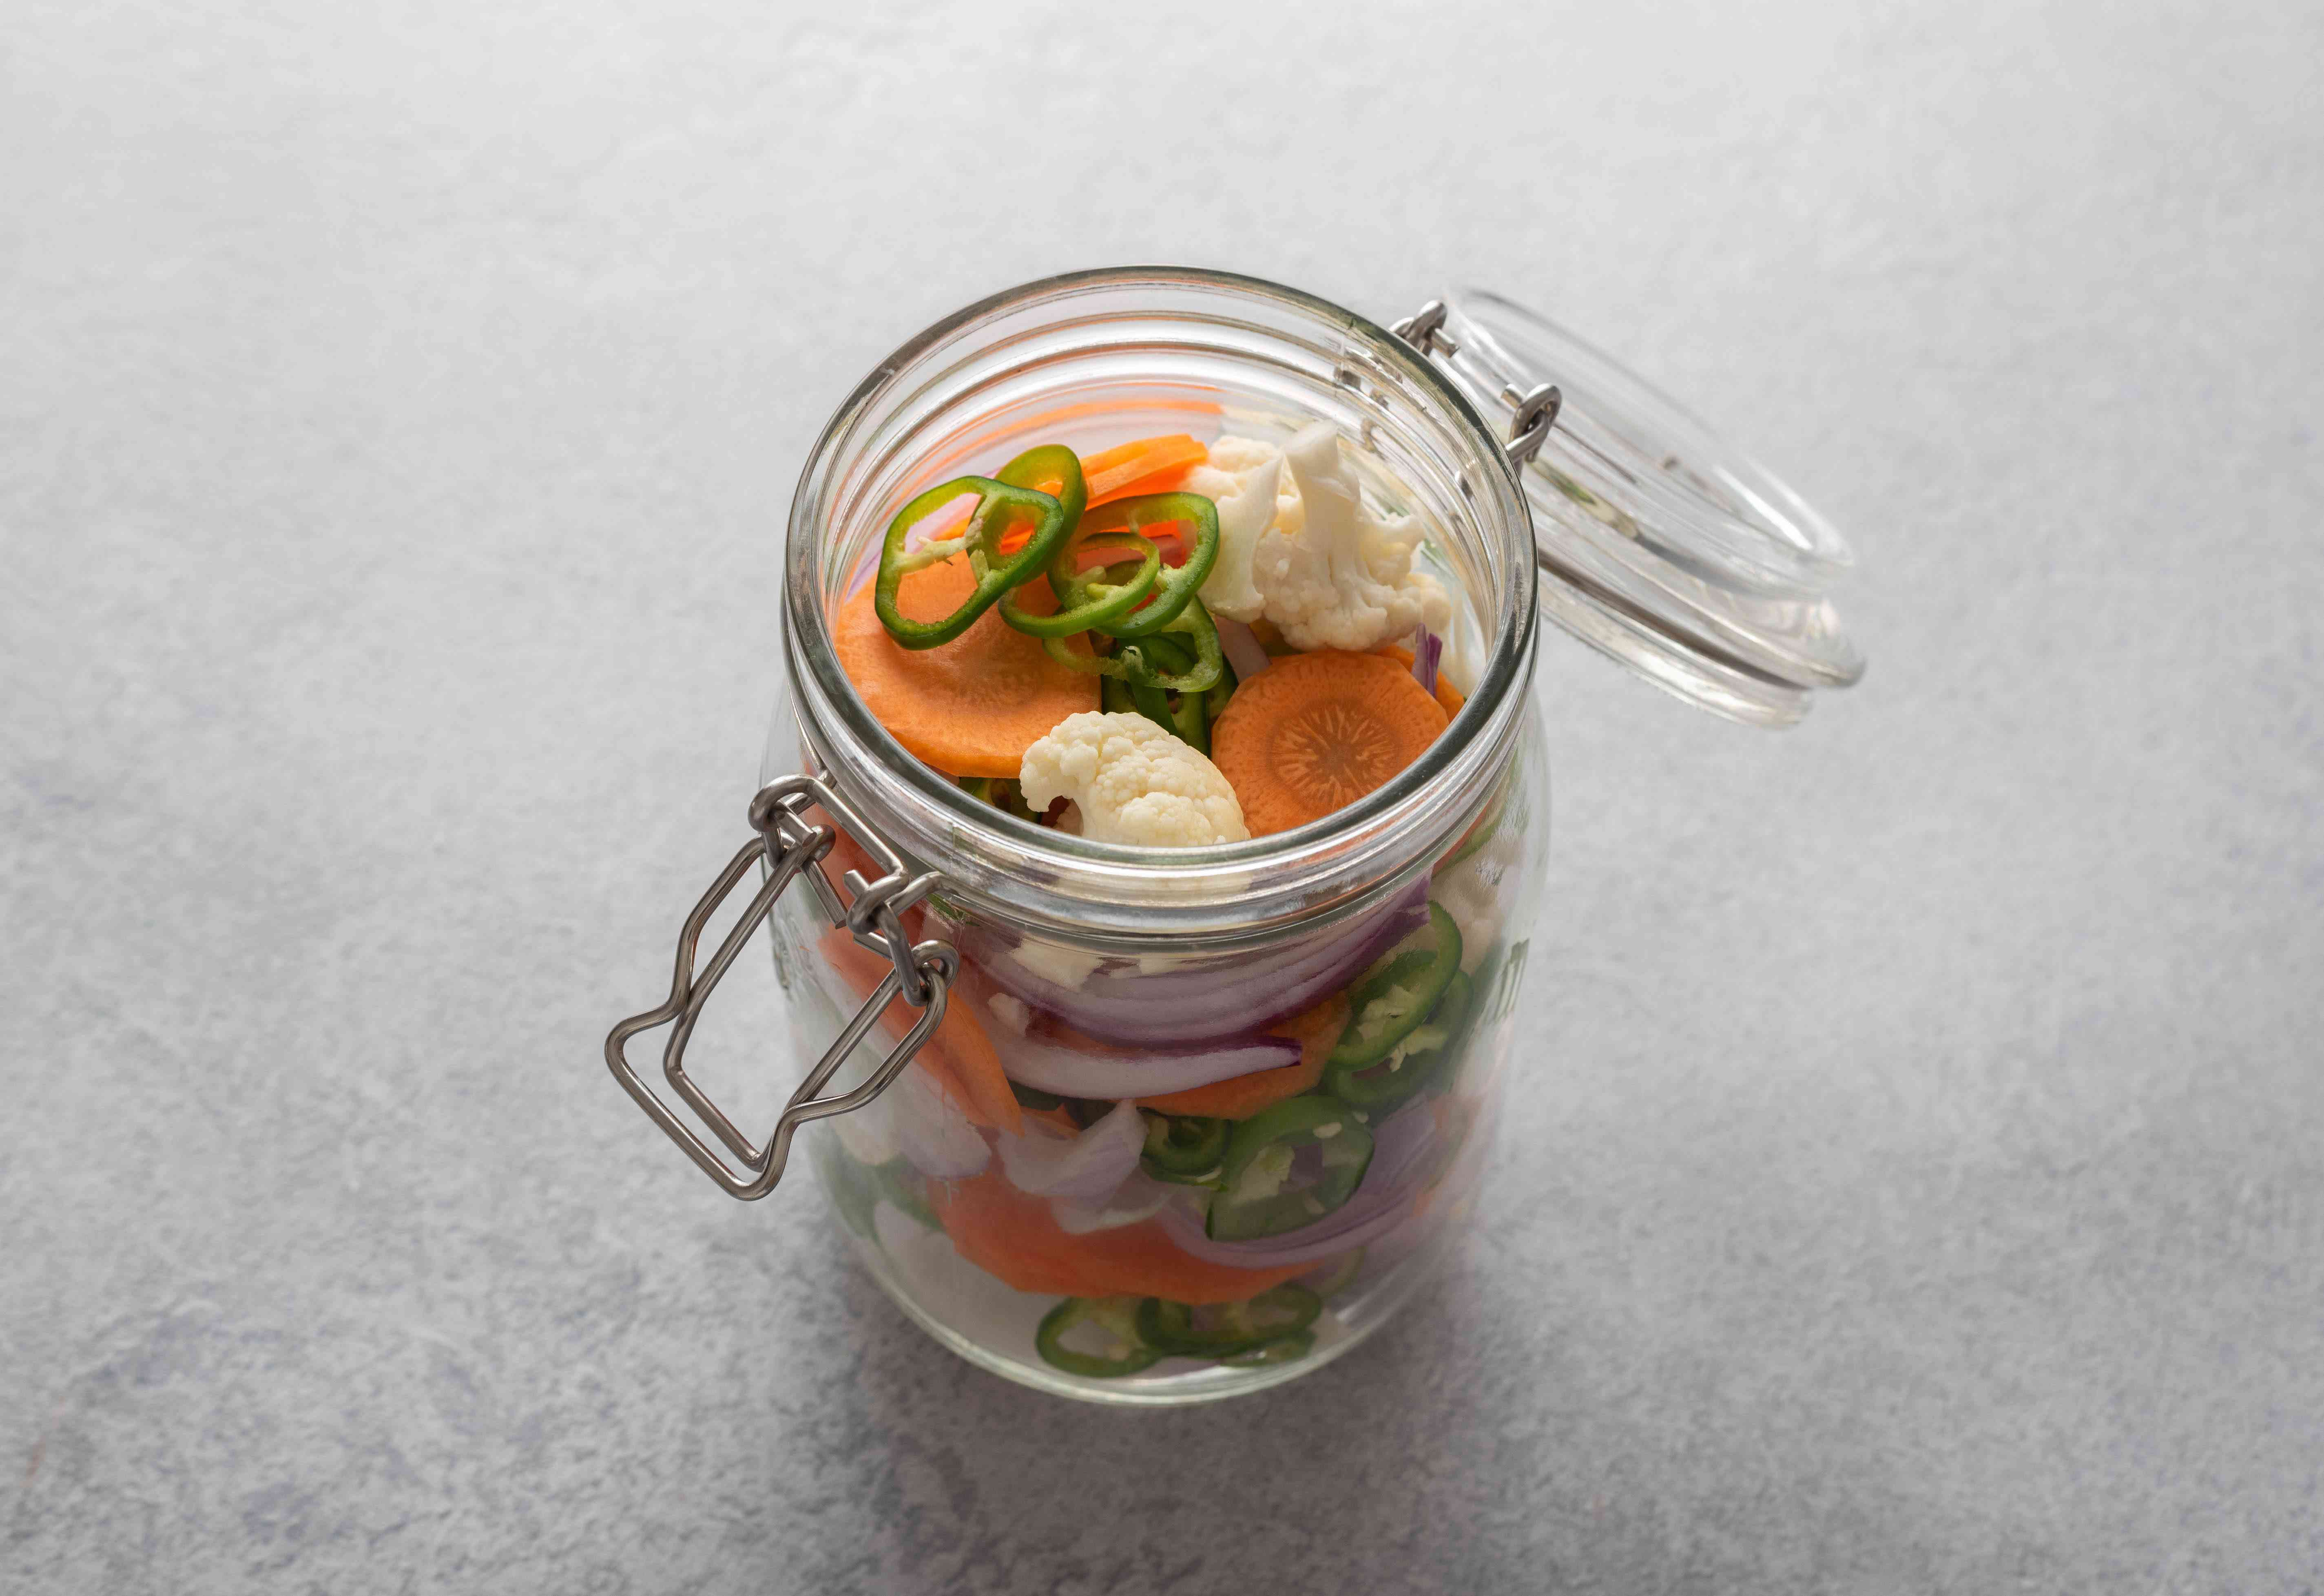 cauliflower, carrots, onion, and chiles in a wide-mouthed quart jar